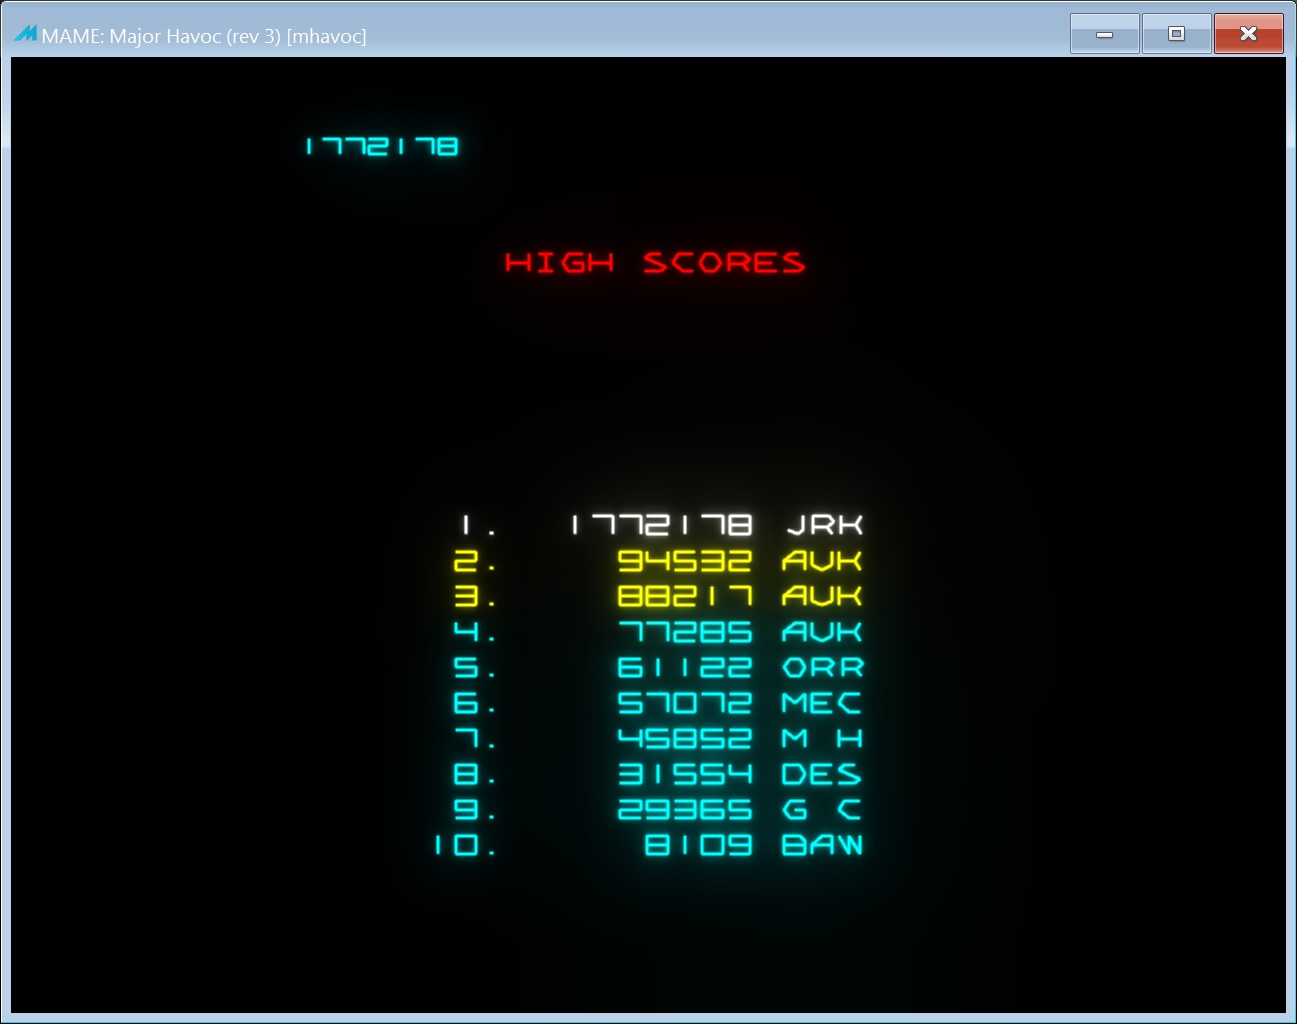 jerky: Major Havoc (Arcade Emulated / M.A.M.E.) 1,772,178 points on 2018-02-16 13:39:07